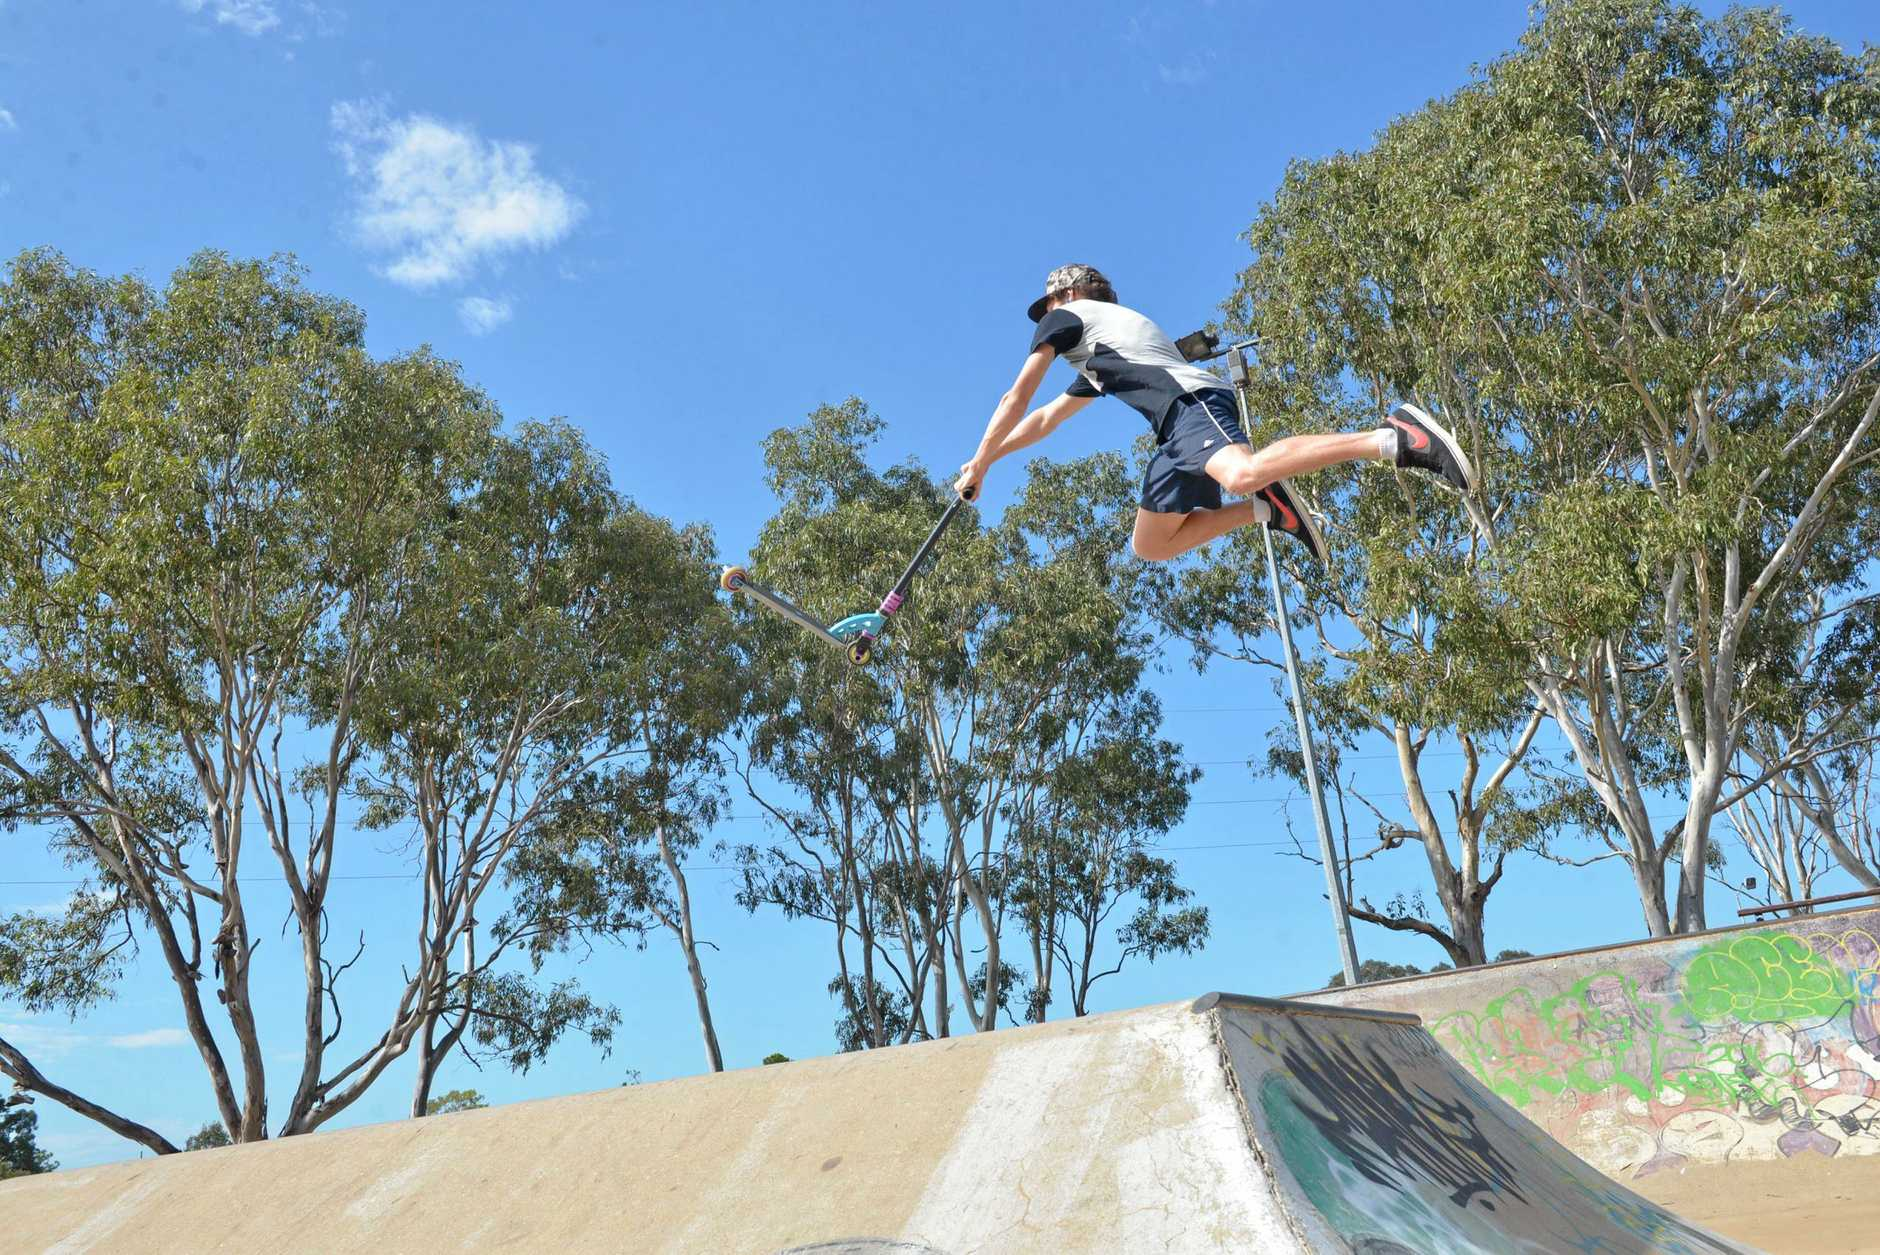 AIR TIME: Ramiah Bowden pulls off some stunts at the skate and bike park in Bundaberg in a file image. Unknown boys from the skate park helped when an elderly man was injured.